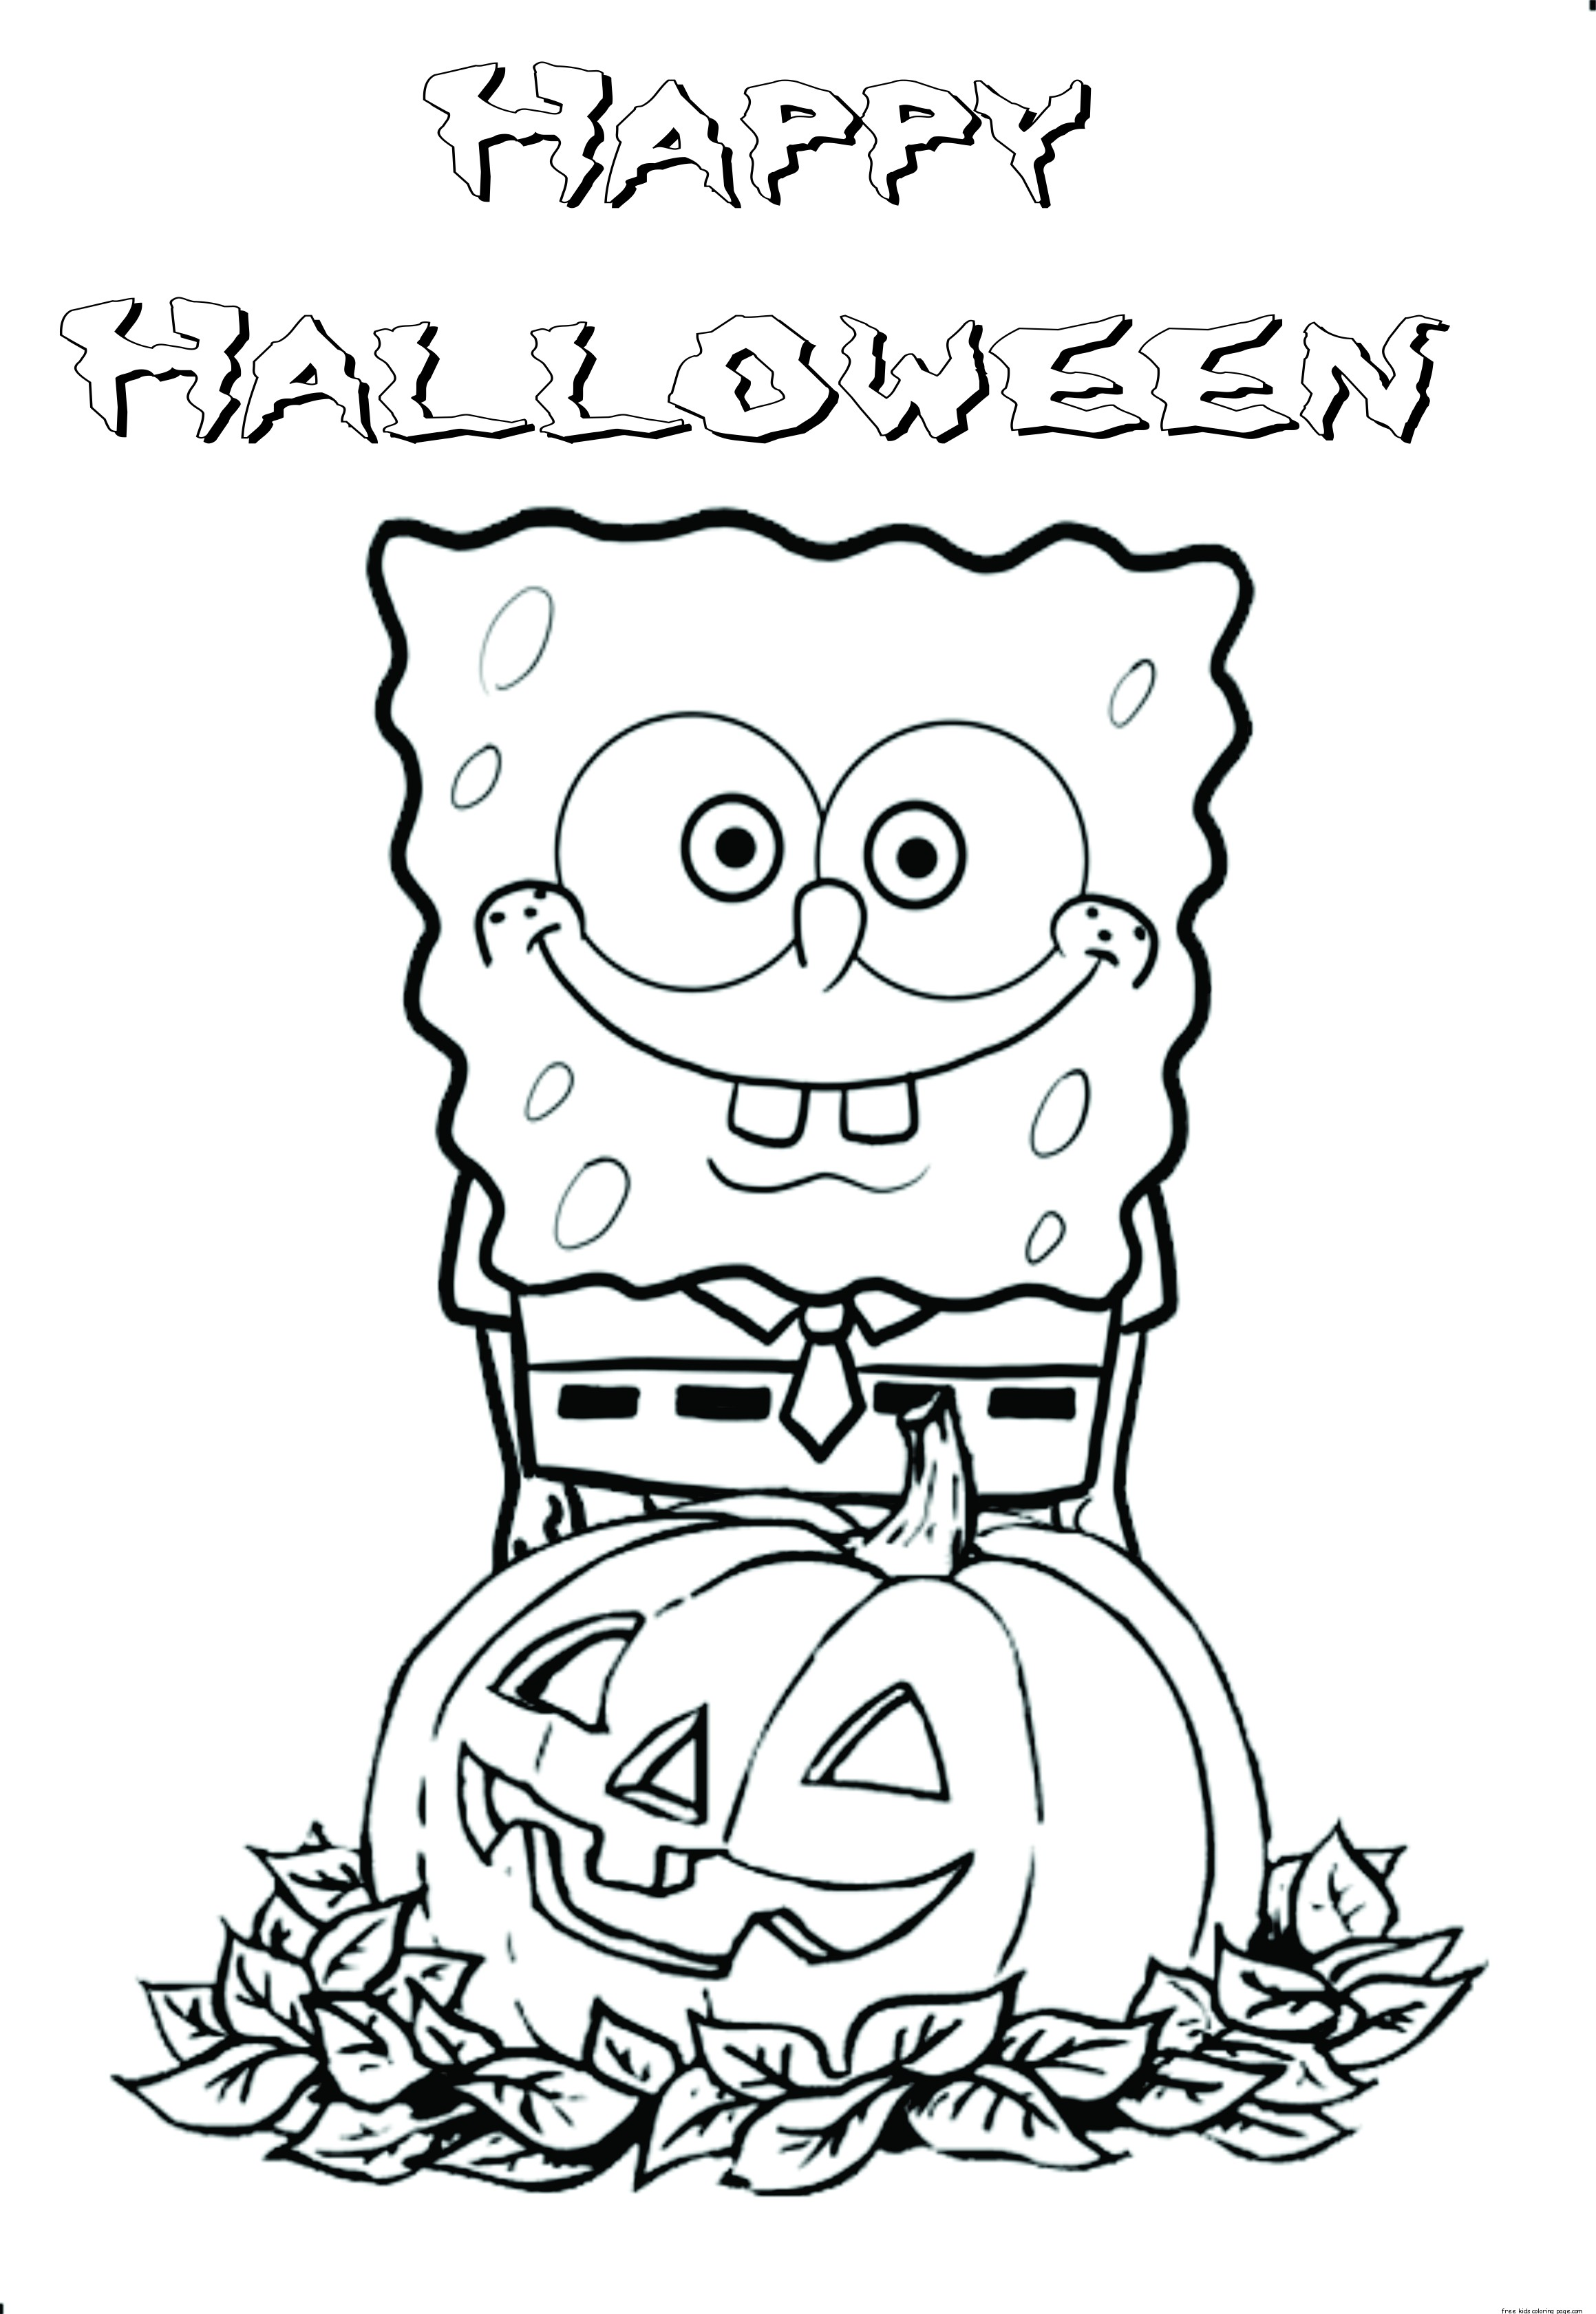 Printable Halloween Spongebob Coloring PagesFree Printable